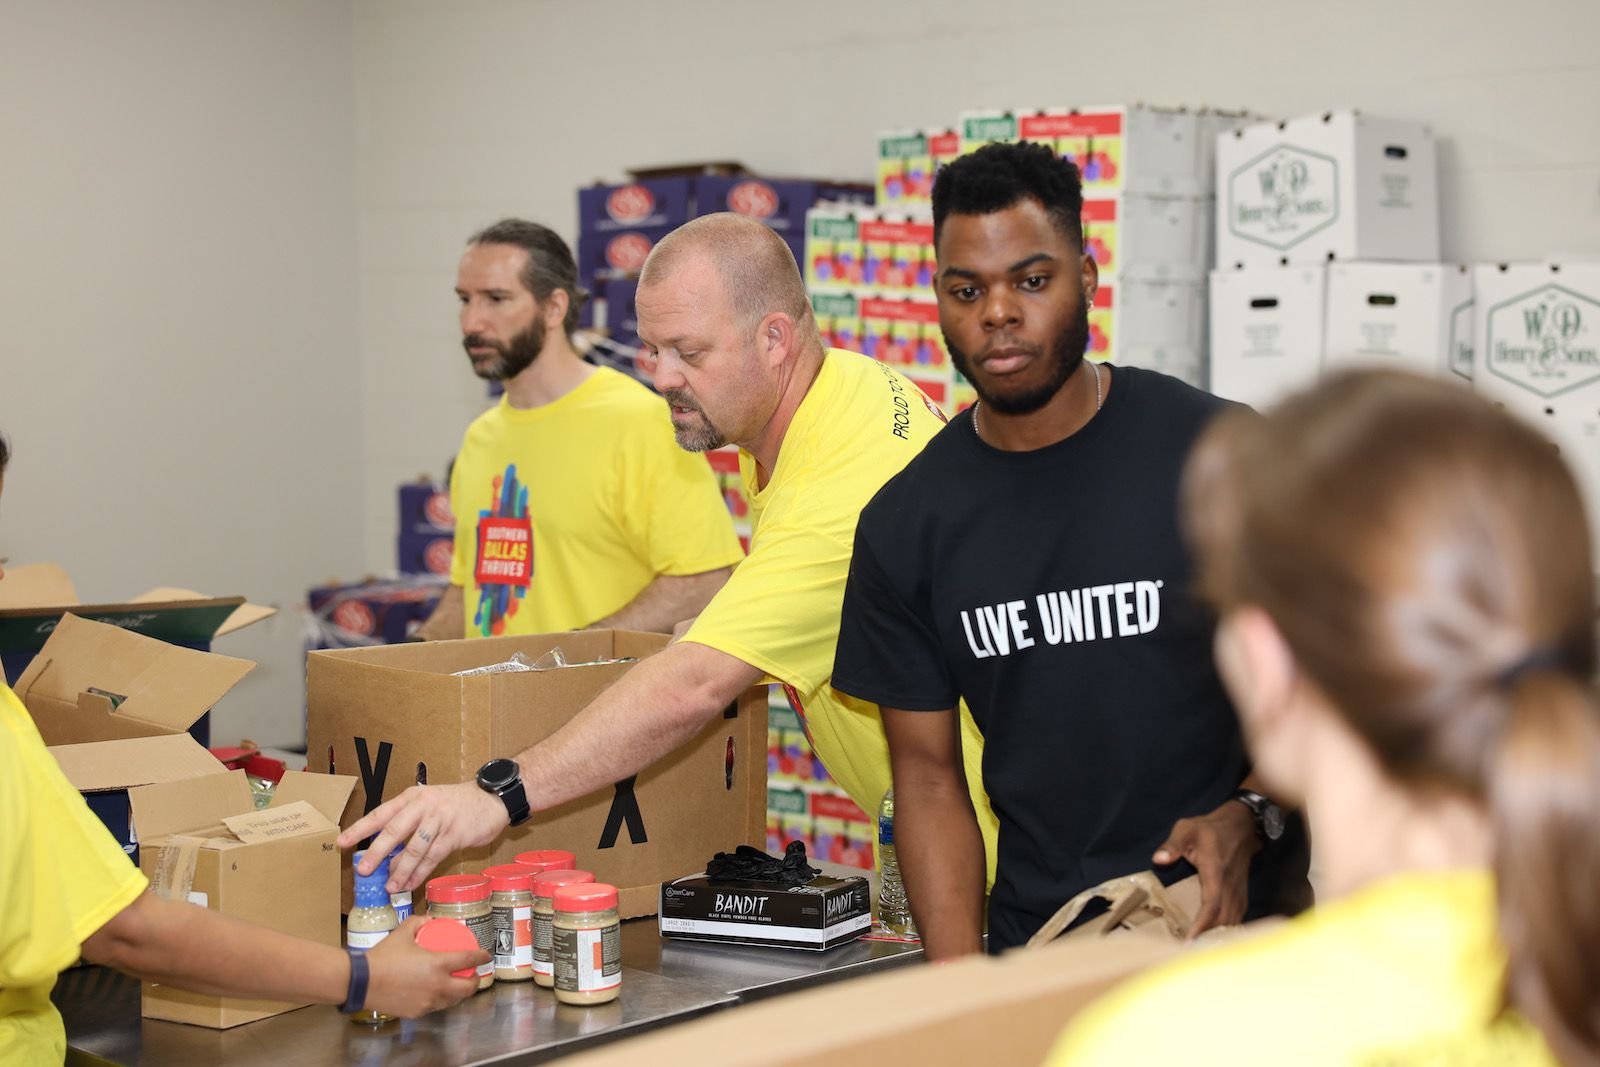 Since the 1970s, the PepsiCo Giving Campaign has provided a way for its employees to give back to communities while engaging with one another as co-workers.